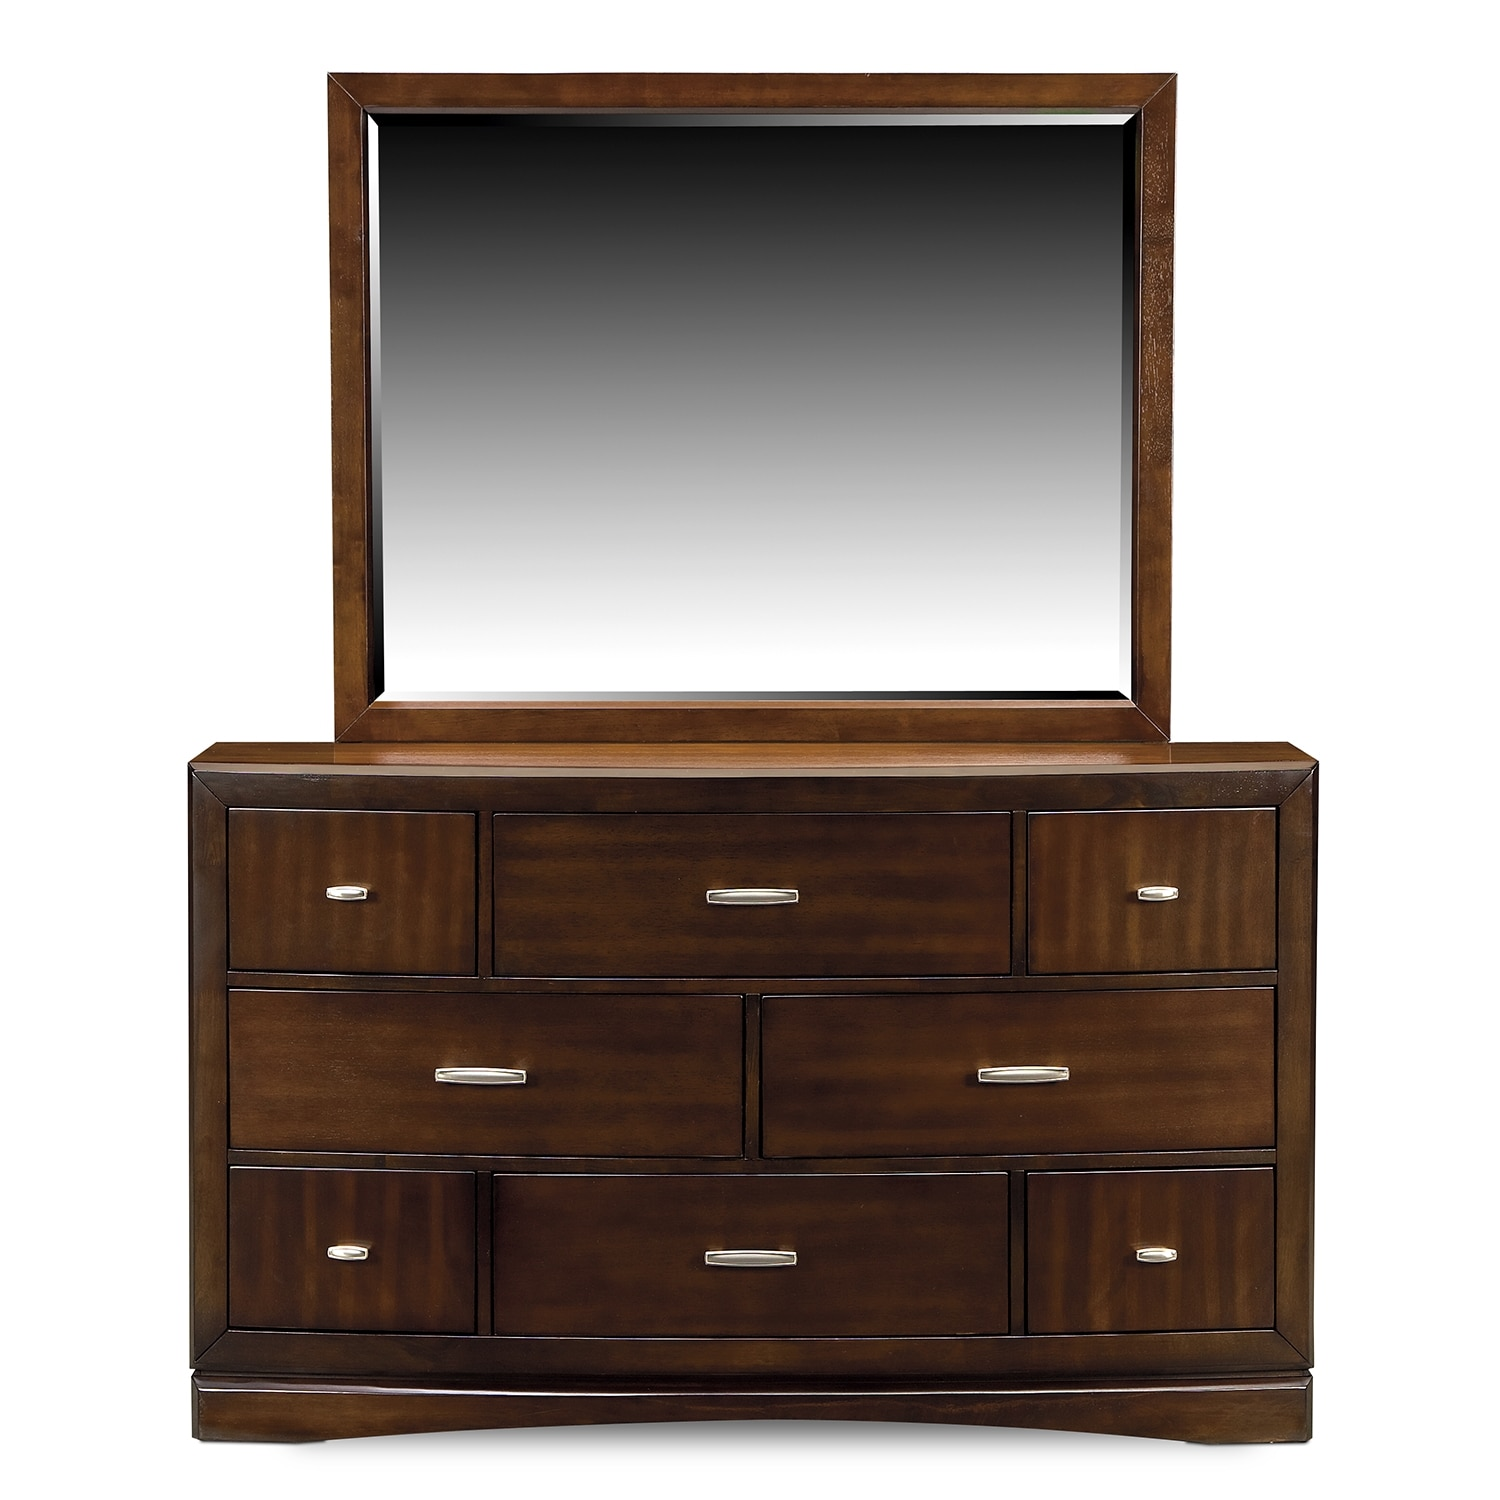 Toronto Bedroom Dresser Mirror Value City Furniture